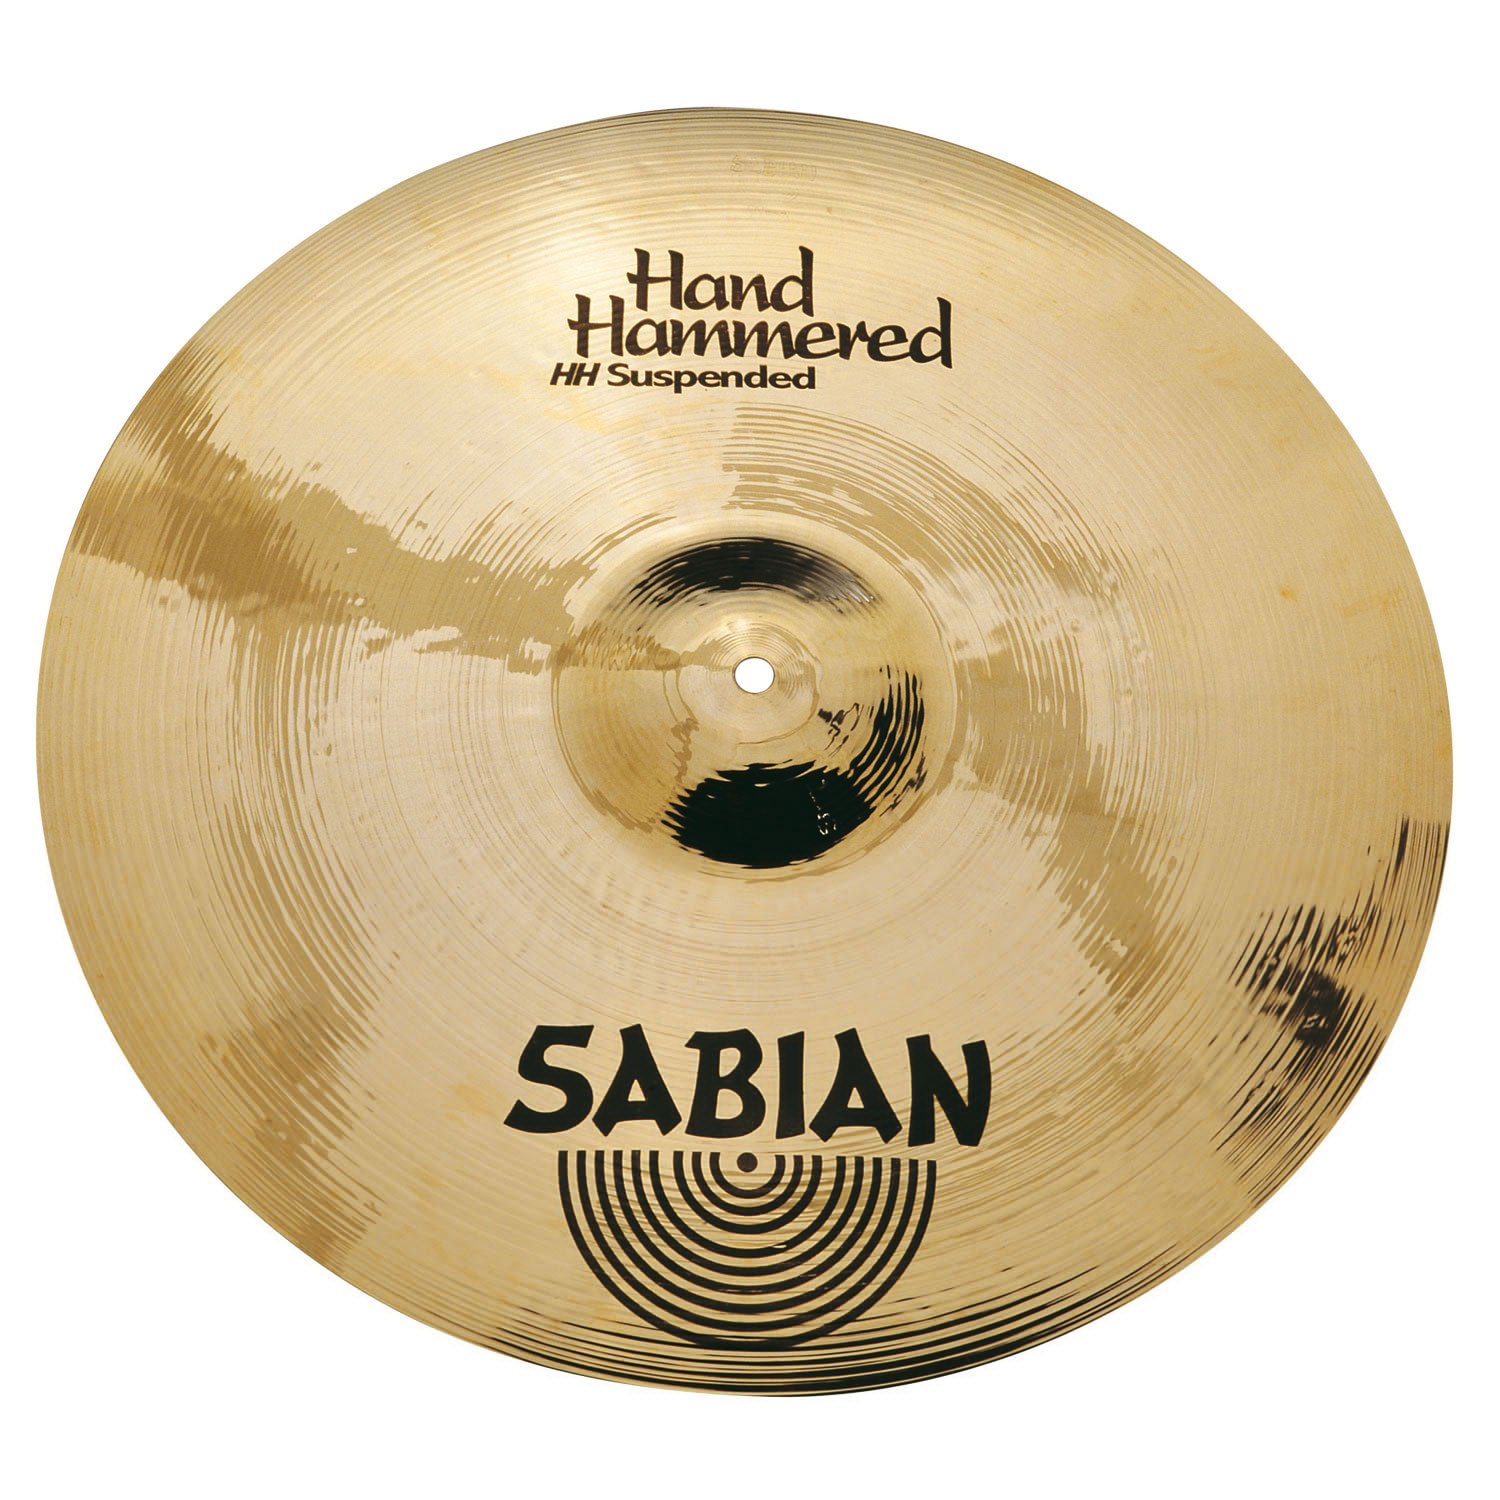 "Sabian 19"" HH Suspended Cymbal"